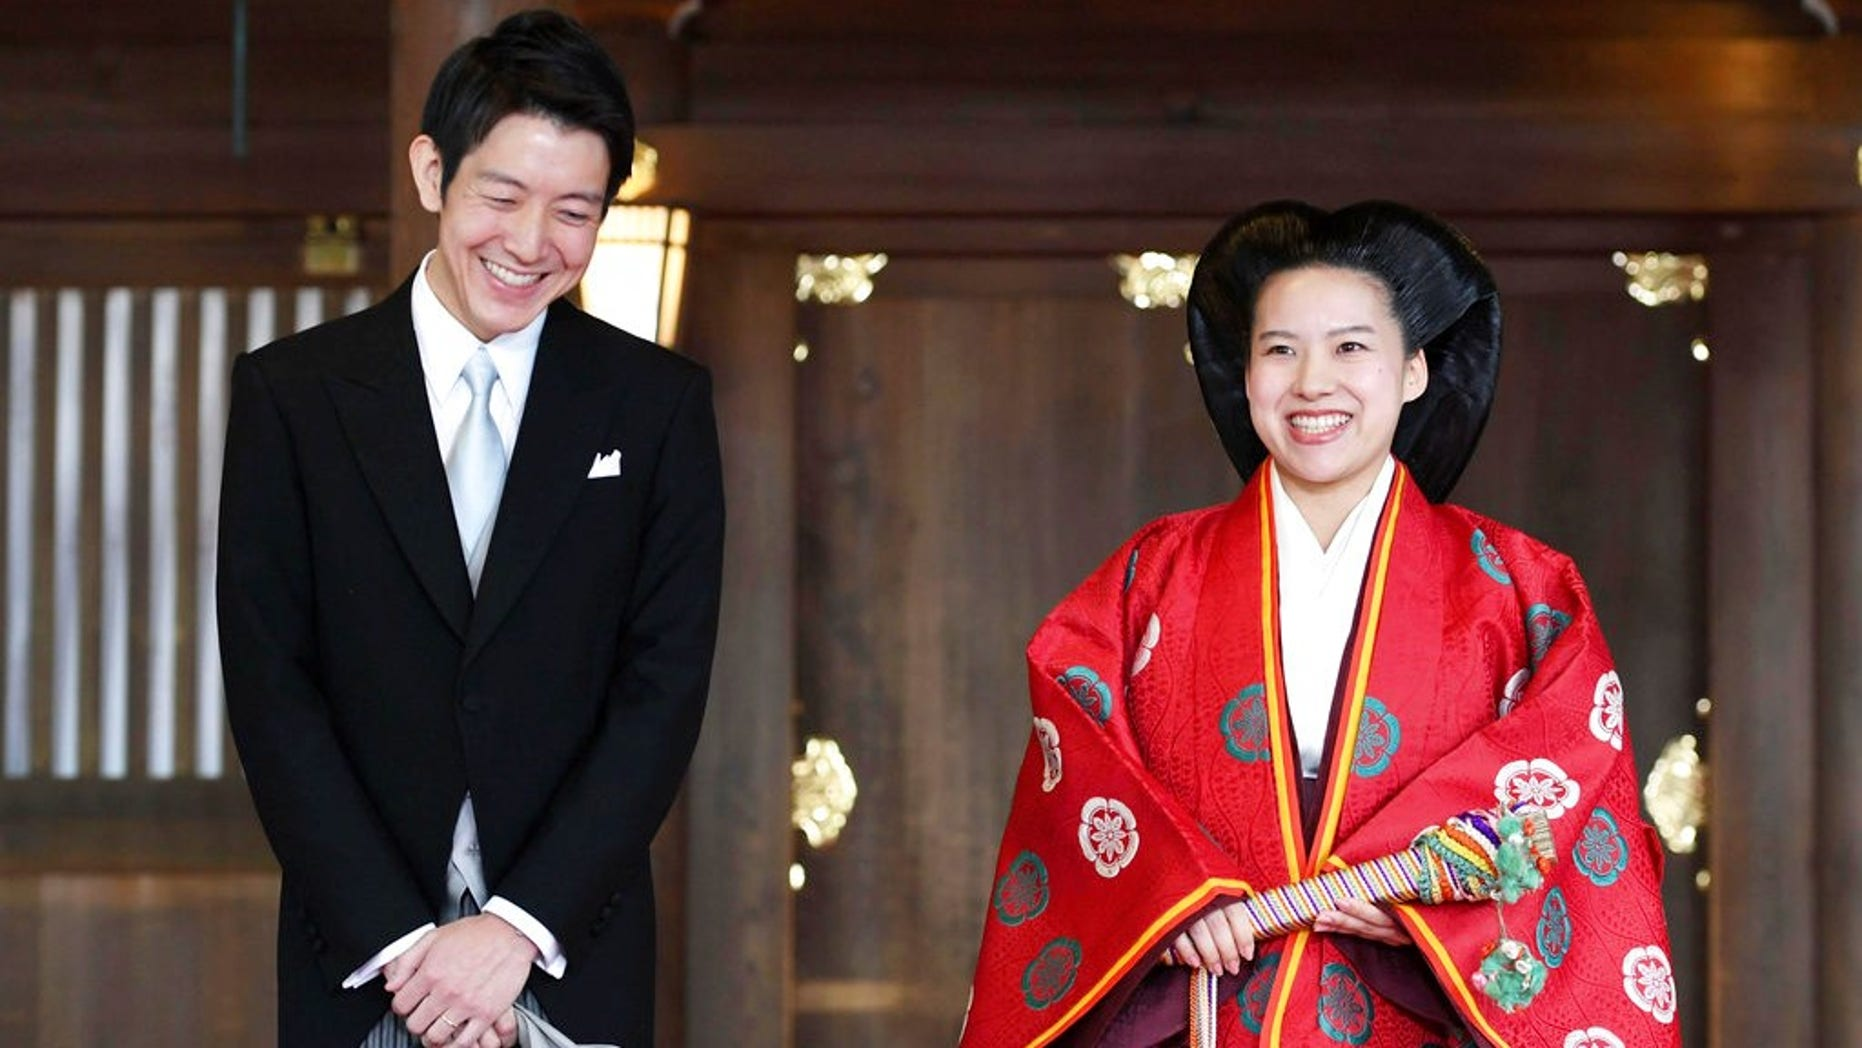 Japanese Princess Ayako, right, dressed in traditional ceremonial robe, and groom Kei Moriya, left, speak to the reporters after their wedding ceremony at Meiji Shrine in Tokyo, Monday, Oct. 29, 2018. Japan's Princess Ayako, the daughter of the emperor's cousin, has married Moriya, a commoner in a ritual-filled ceremony at Tokyo's Meiji Shrine.(Kyodo News via AP)